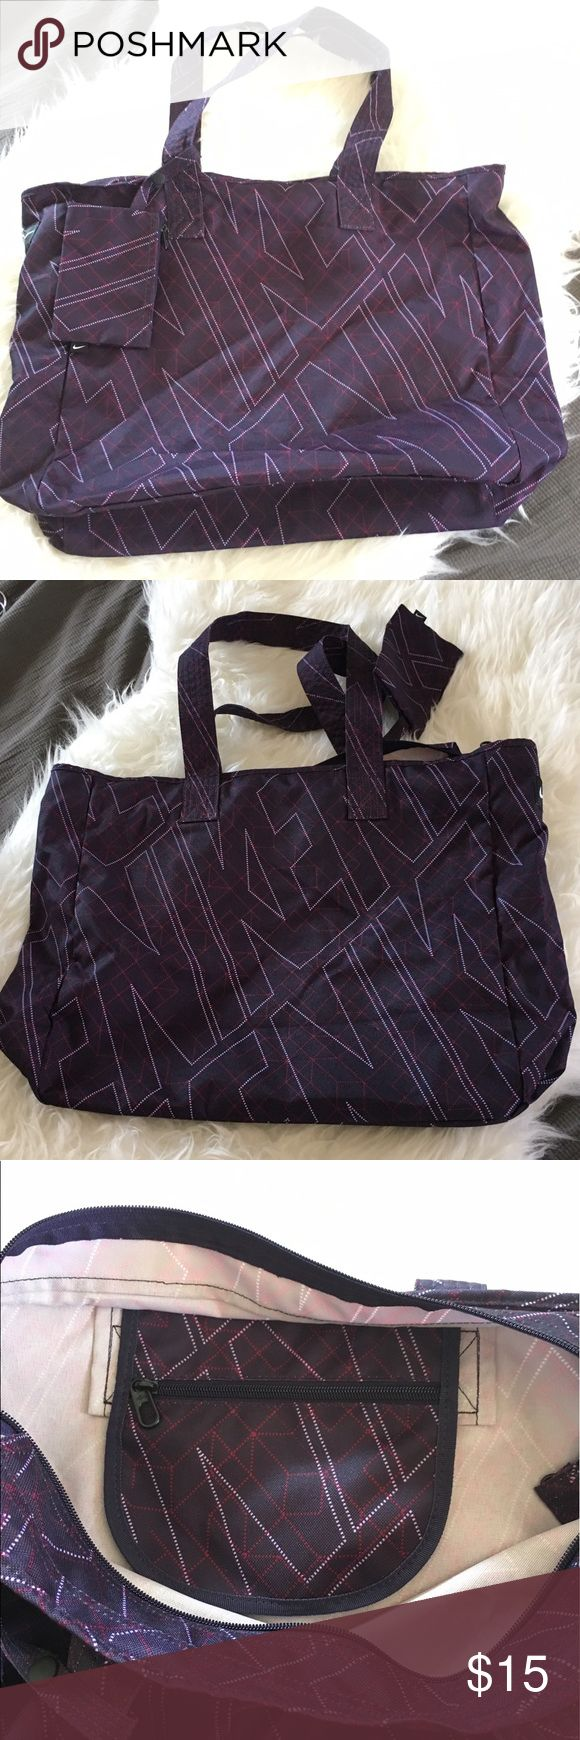 Nike Gym Tote Bag with Coin Purse Purple Nike gym tote bag with attached coin purse that can be removed. Large interior and small interior zippered pocket. Nike Bags Totes